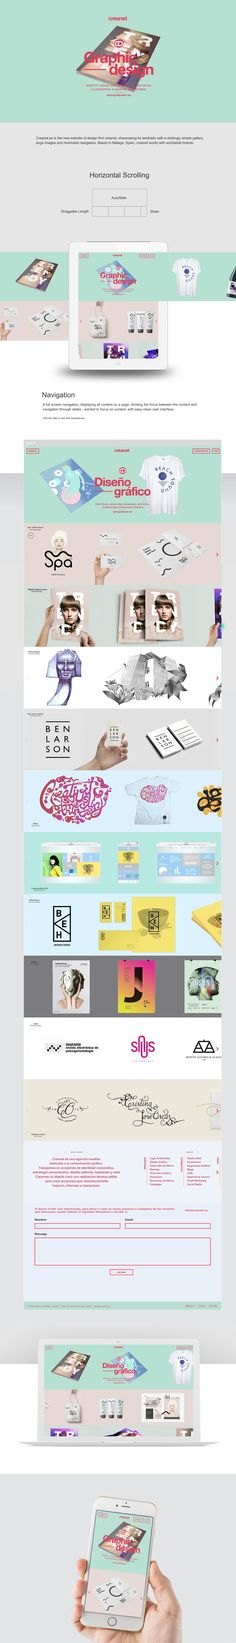 creanet website on Behance